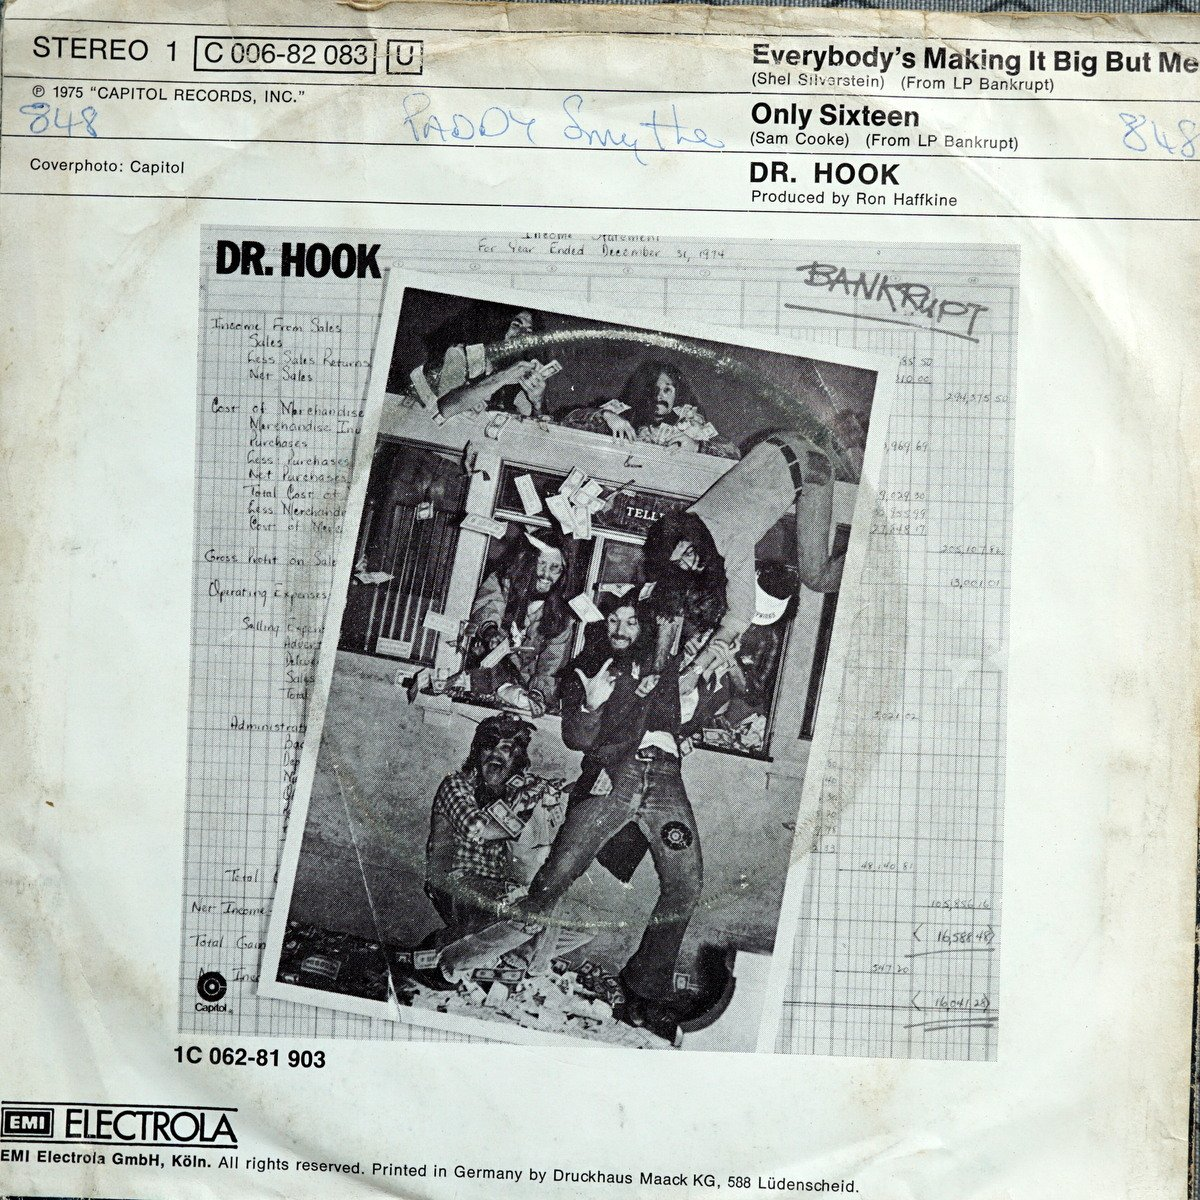 S BR B2 - 1C 006-882083 - Everybodys Making it Big But Me - 1975 - DE